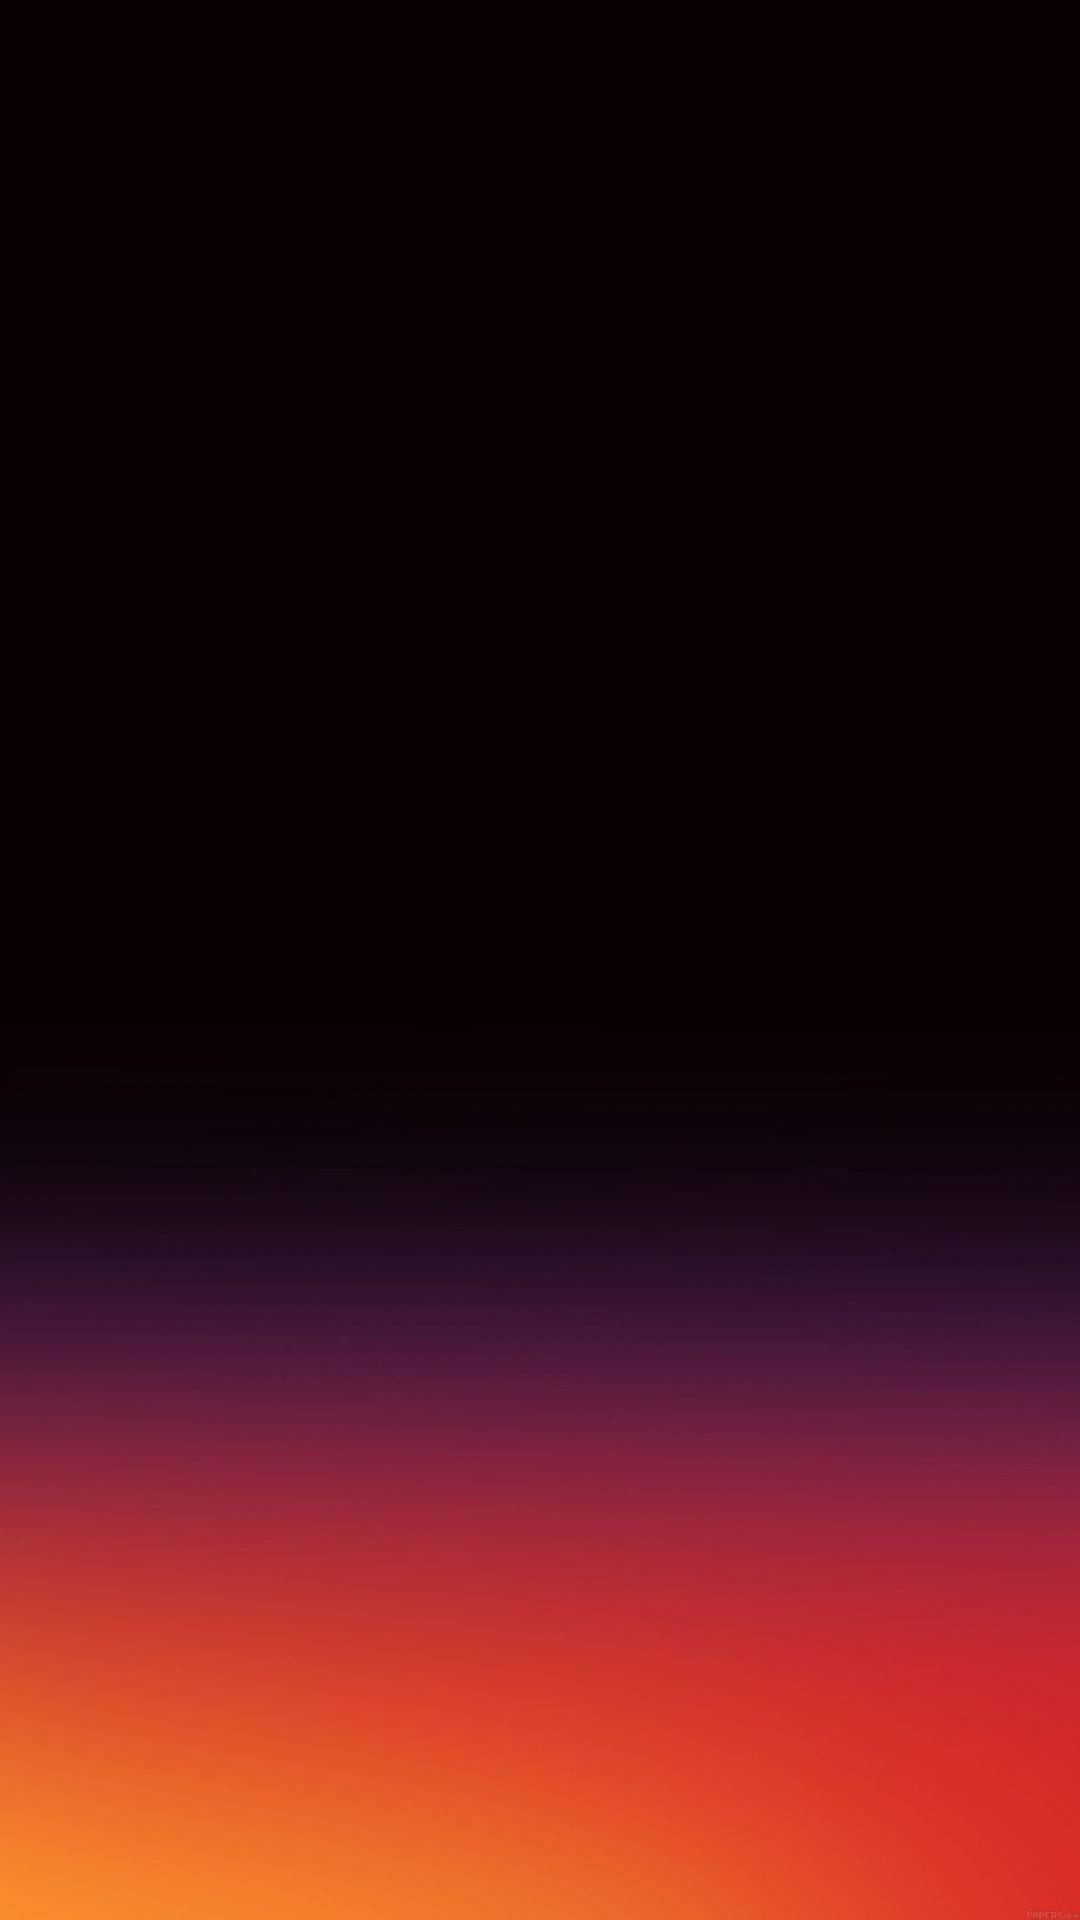 Ombre wallpaper for iPhone